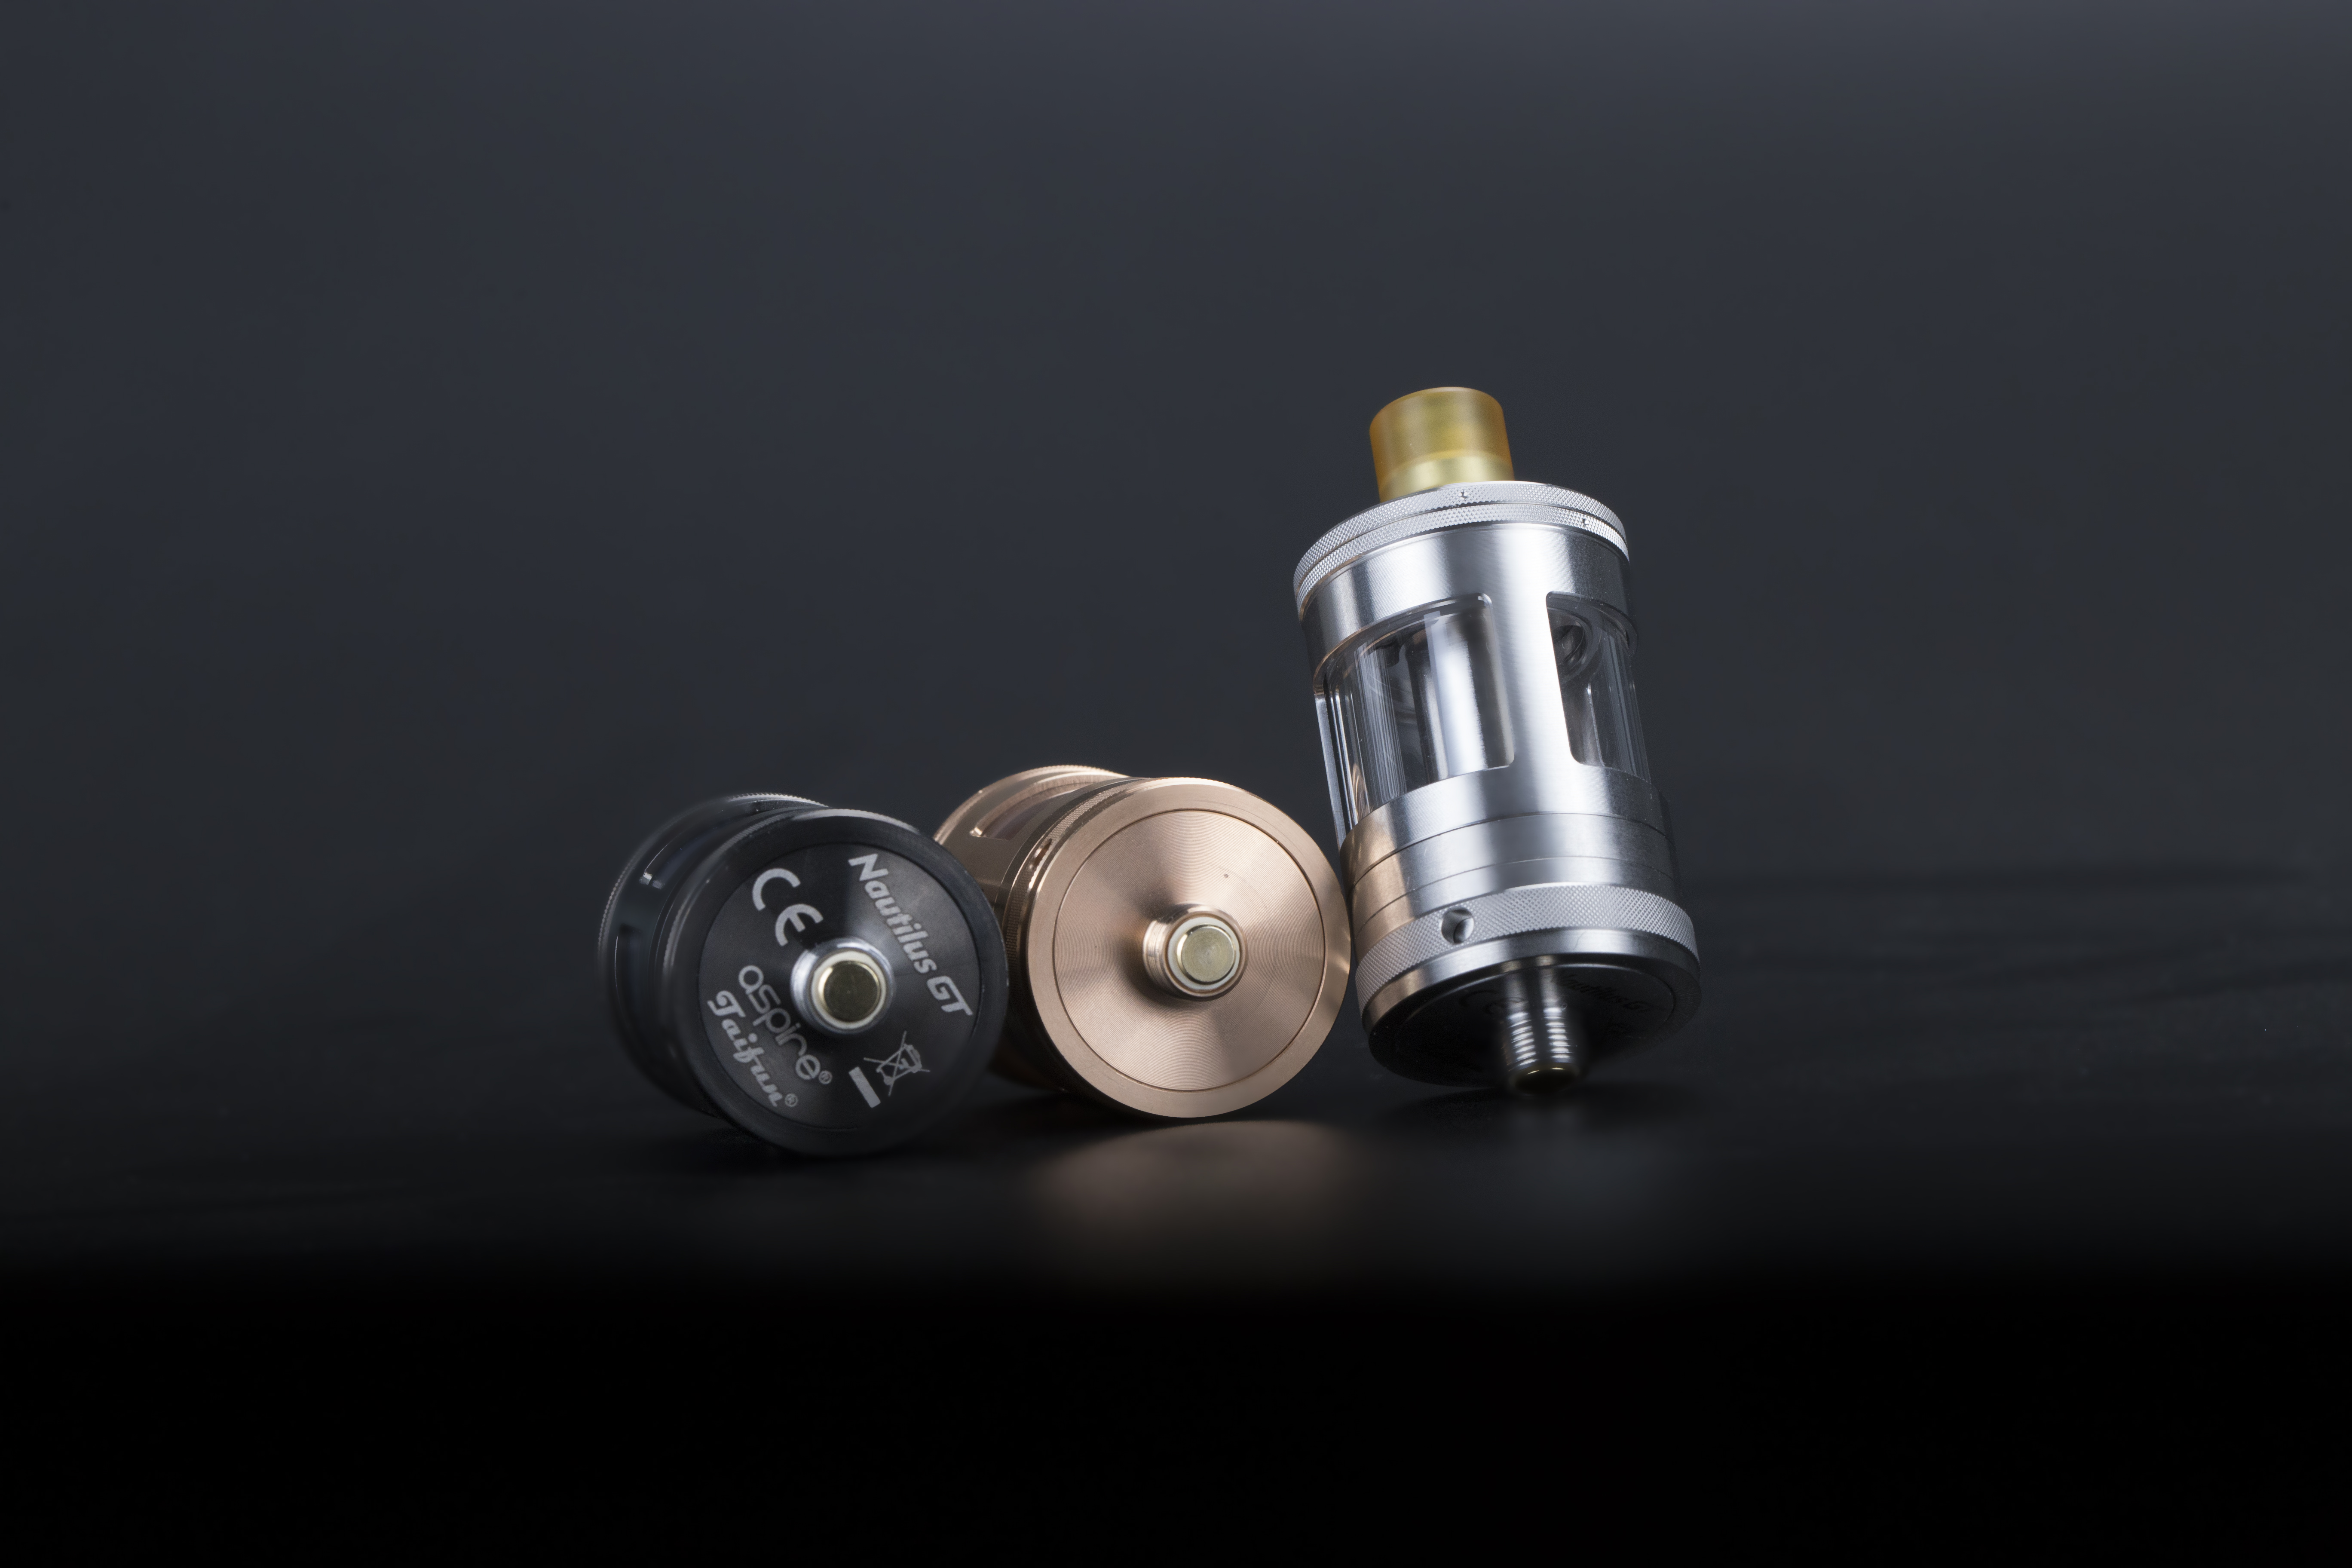 One of the best tanks for chain vaping, the Nautilus GT Tank.